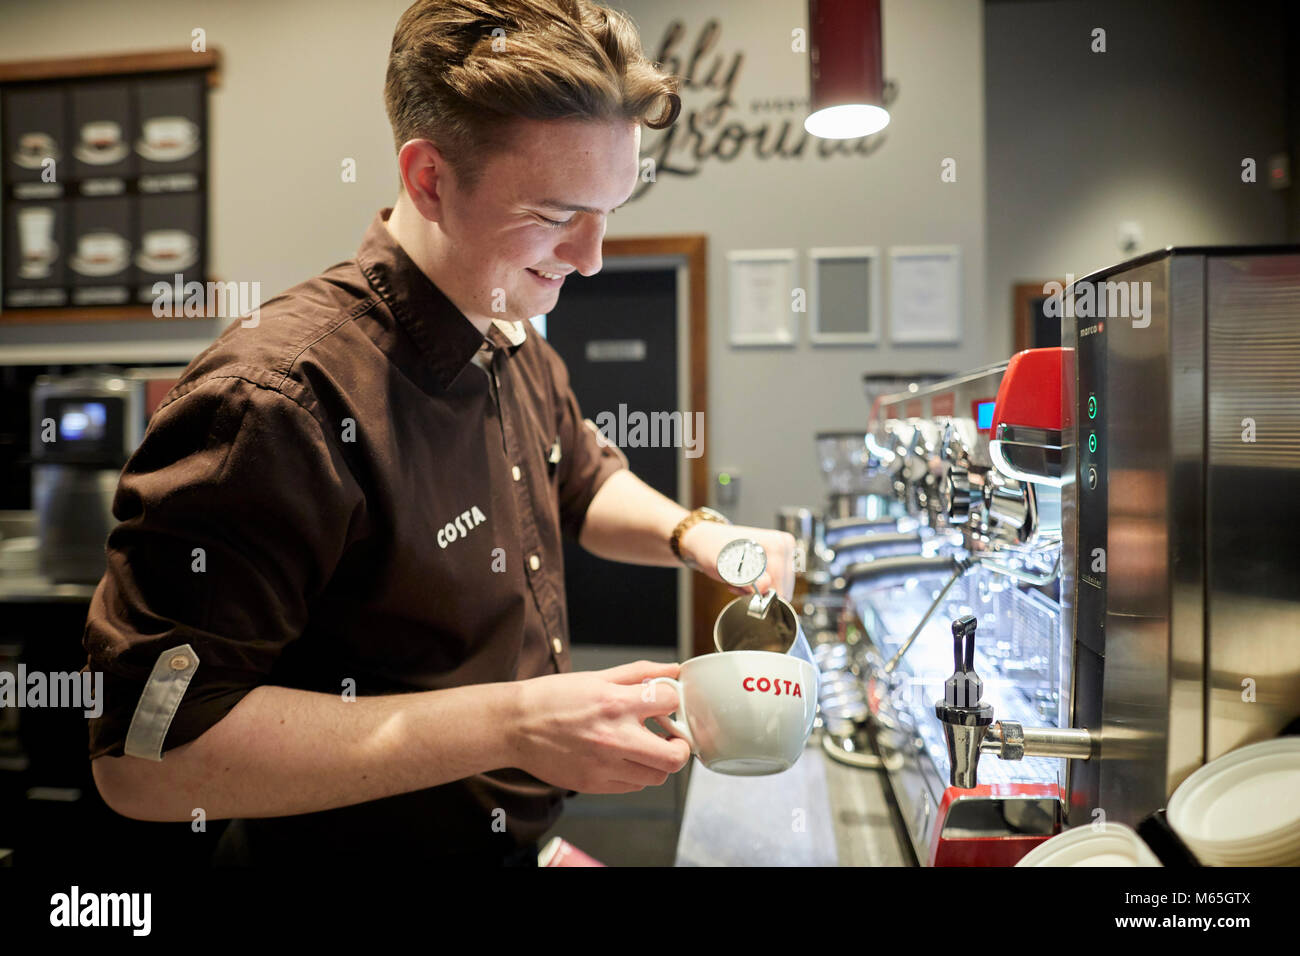 Costa Coffee Shop Arbeiter in Store Stockbild